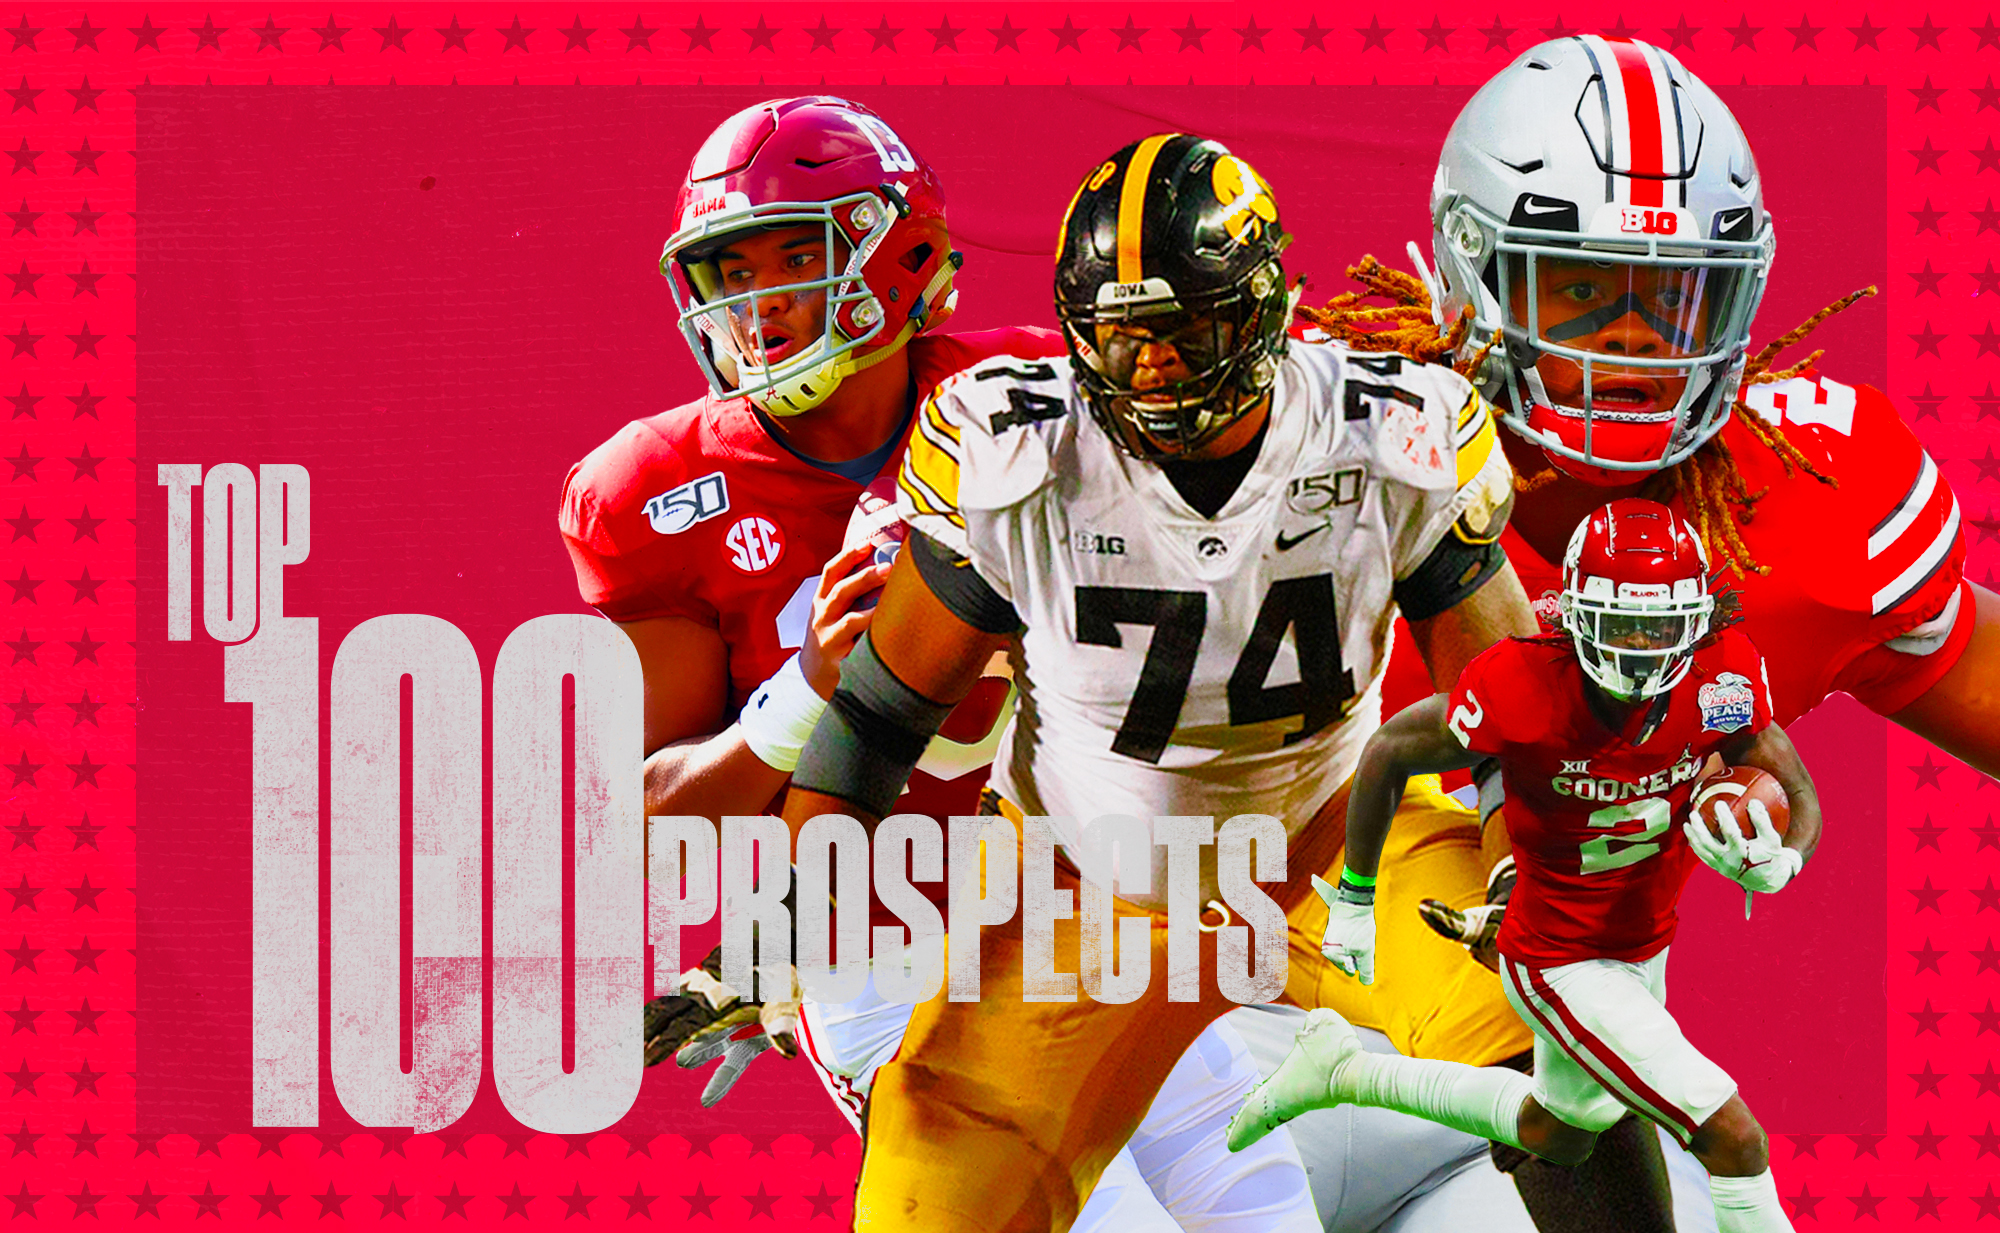 """An art collage of NFL Draft prospects Tua Tagovailoa, Tristan Wirfs, Chase Young, CeeDee Lamb, superimposed on a red background with """"Top 100 prospects"""" in white letters and a star border"""